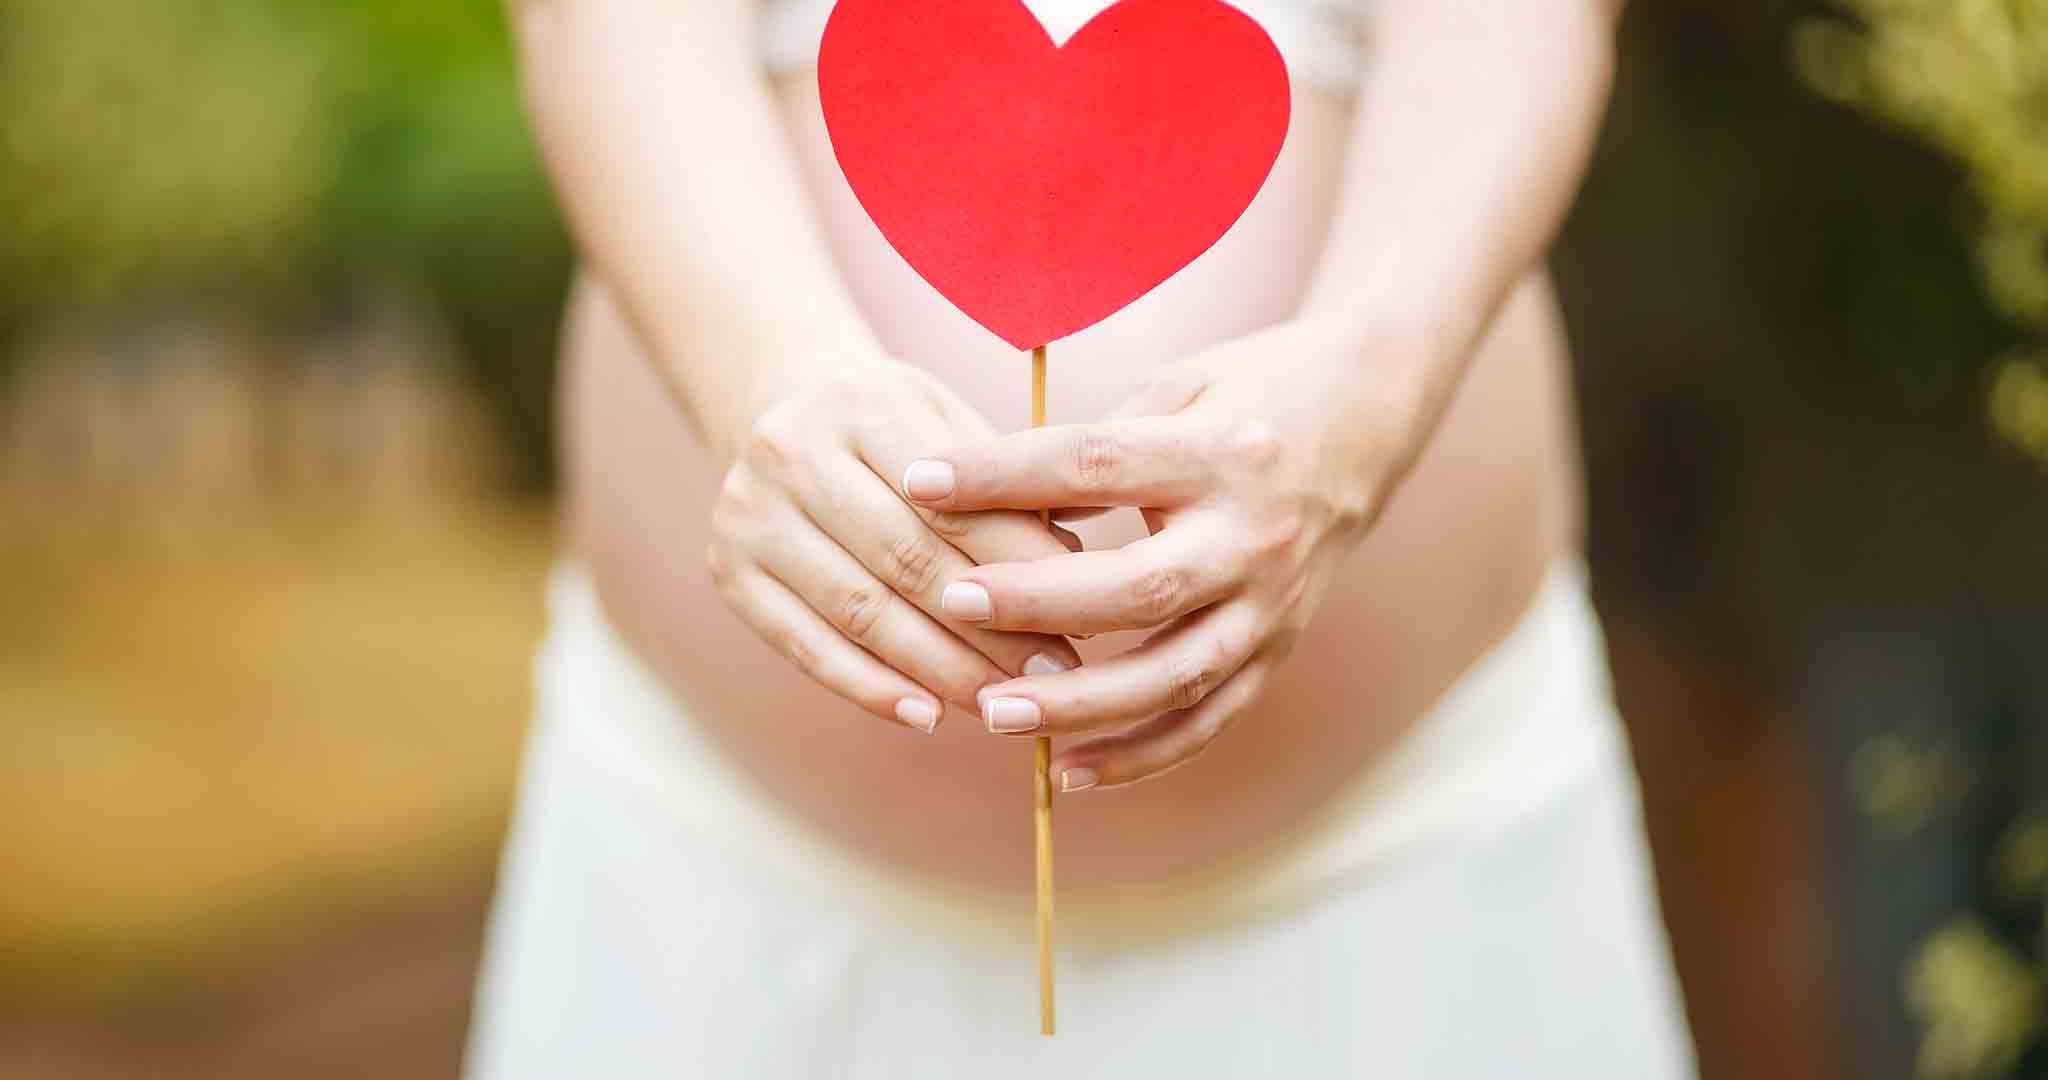 adult baby belly pregnant stock photos 001